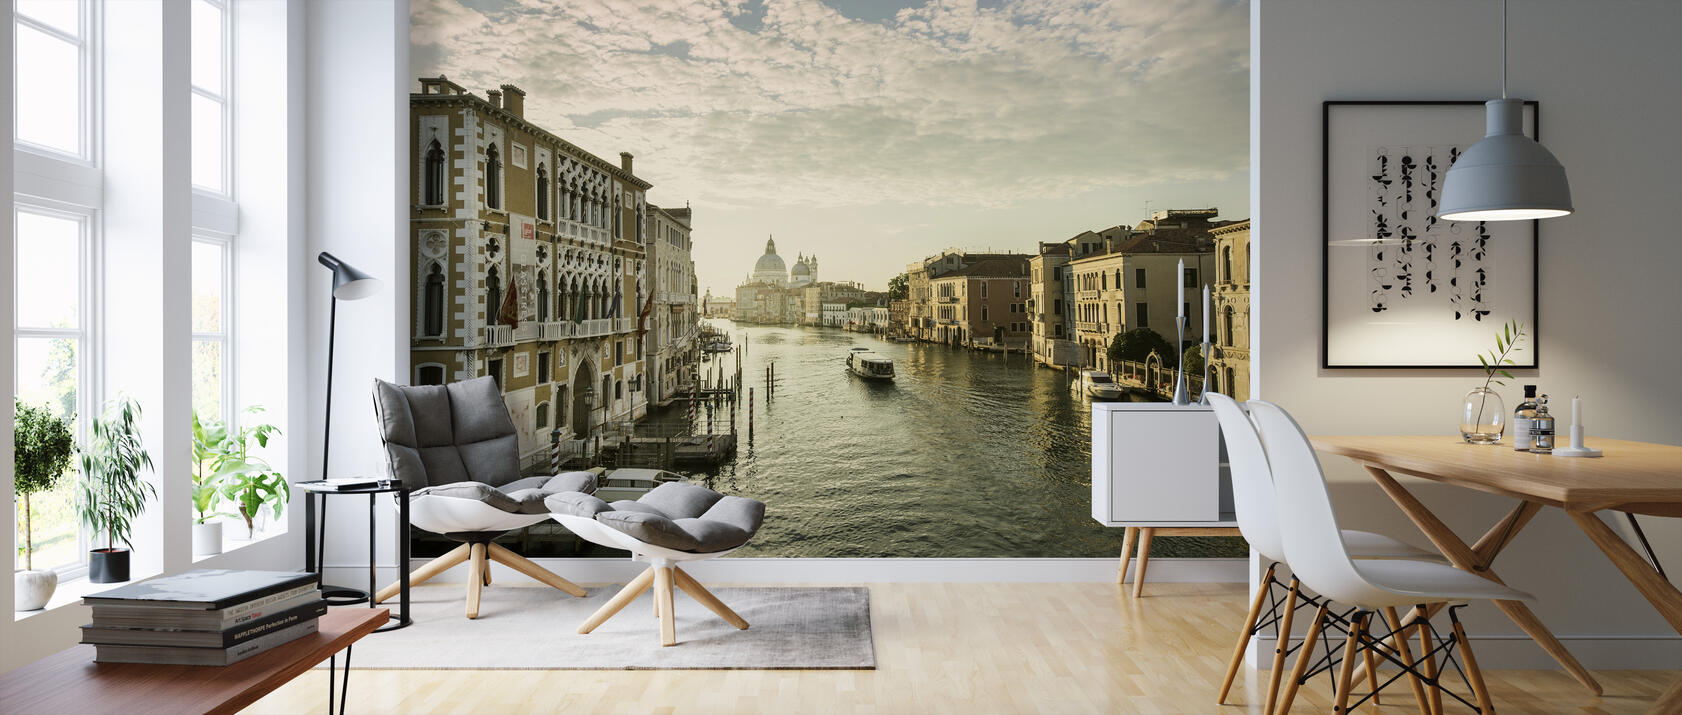 sunny venice preiswerte fototapete photowall. Black Bedroom Furniture Sets. Home Design Ideas